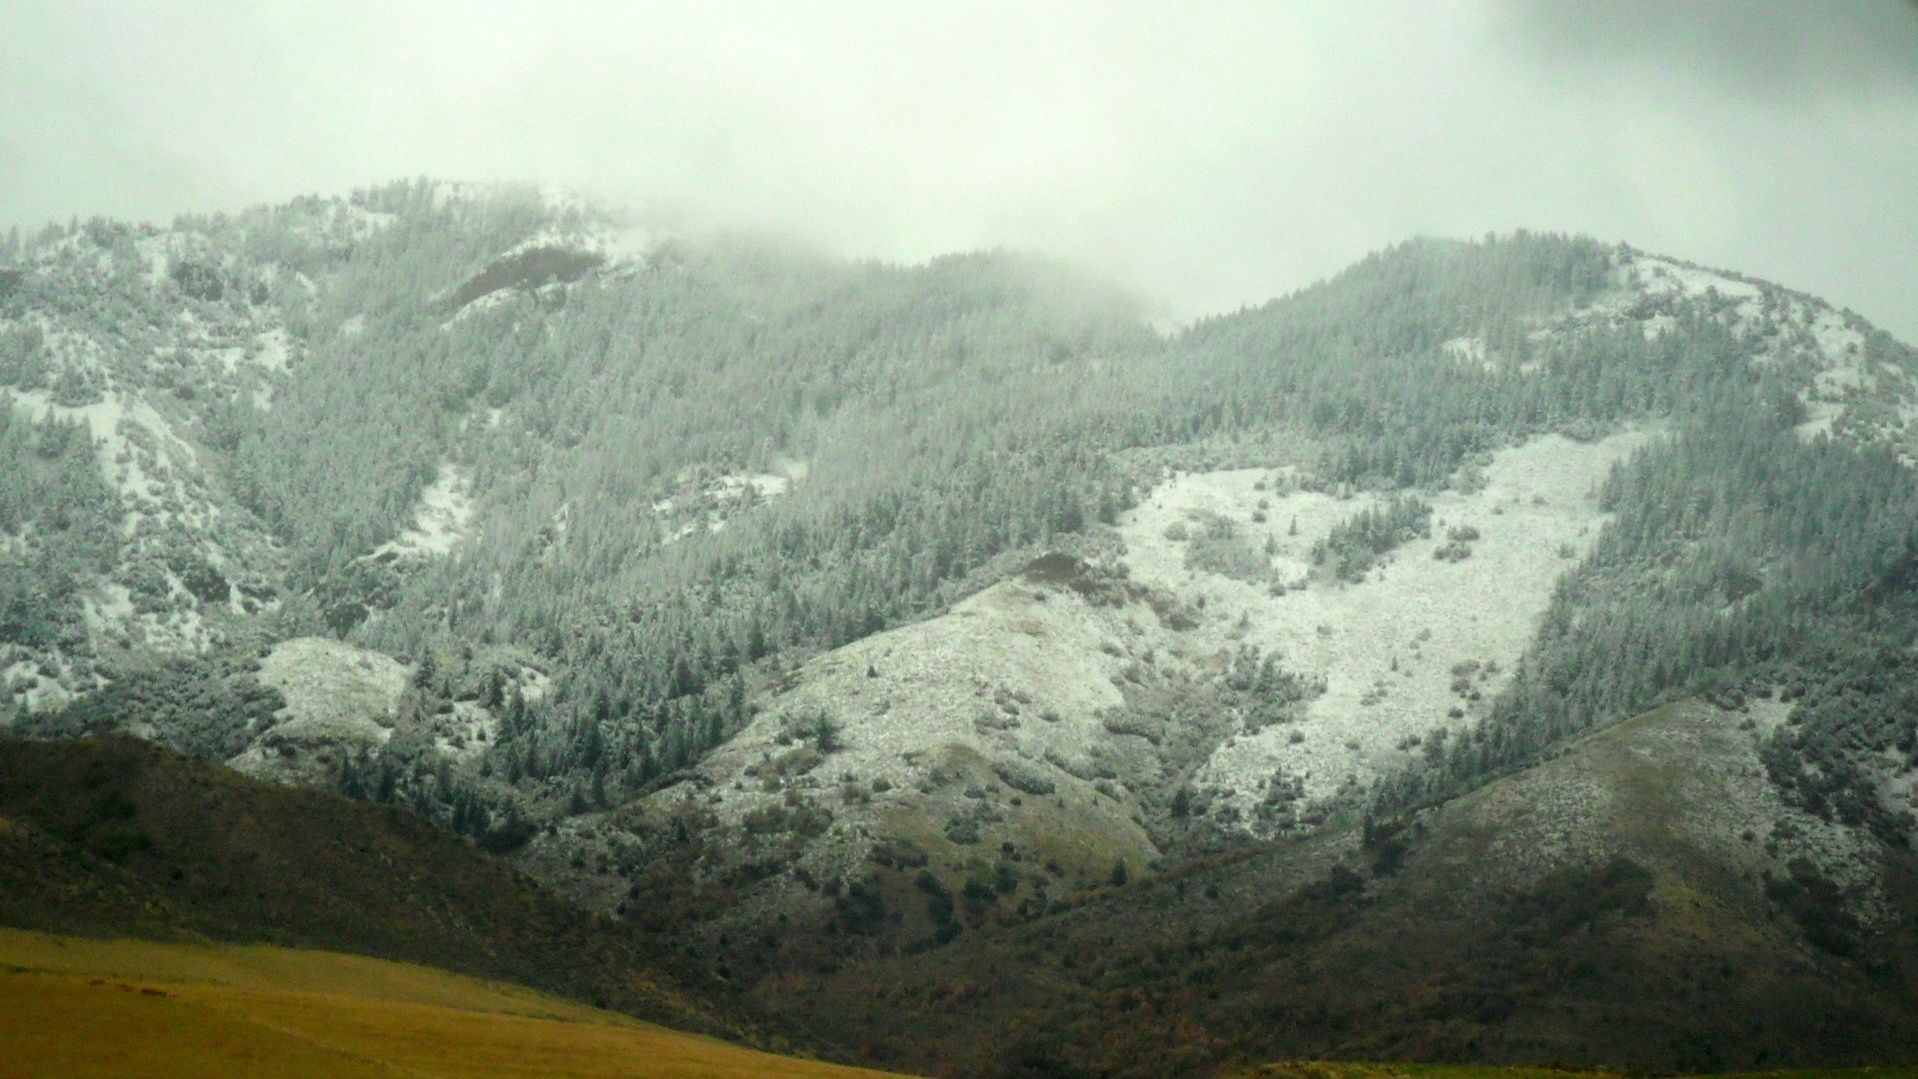 I TOOK THIS PICTURE ON THE WAY TO THE SALT LAKE AIRPORT